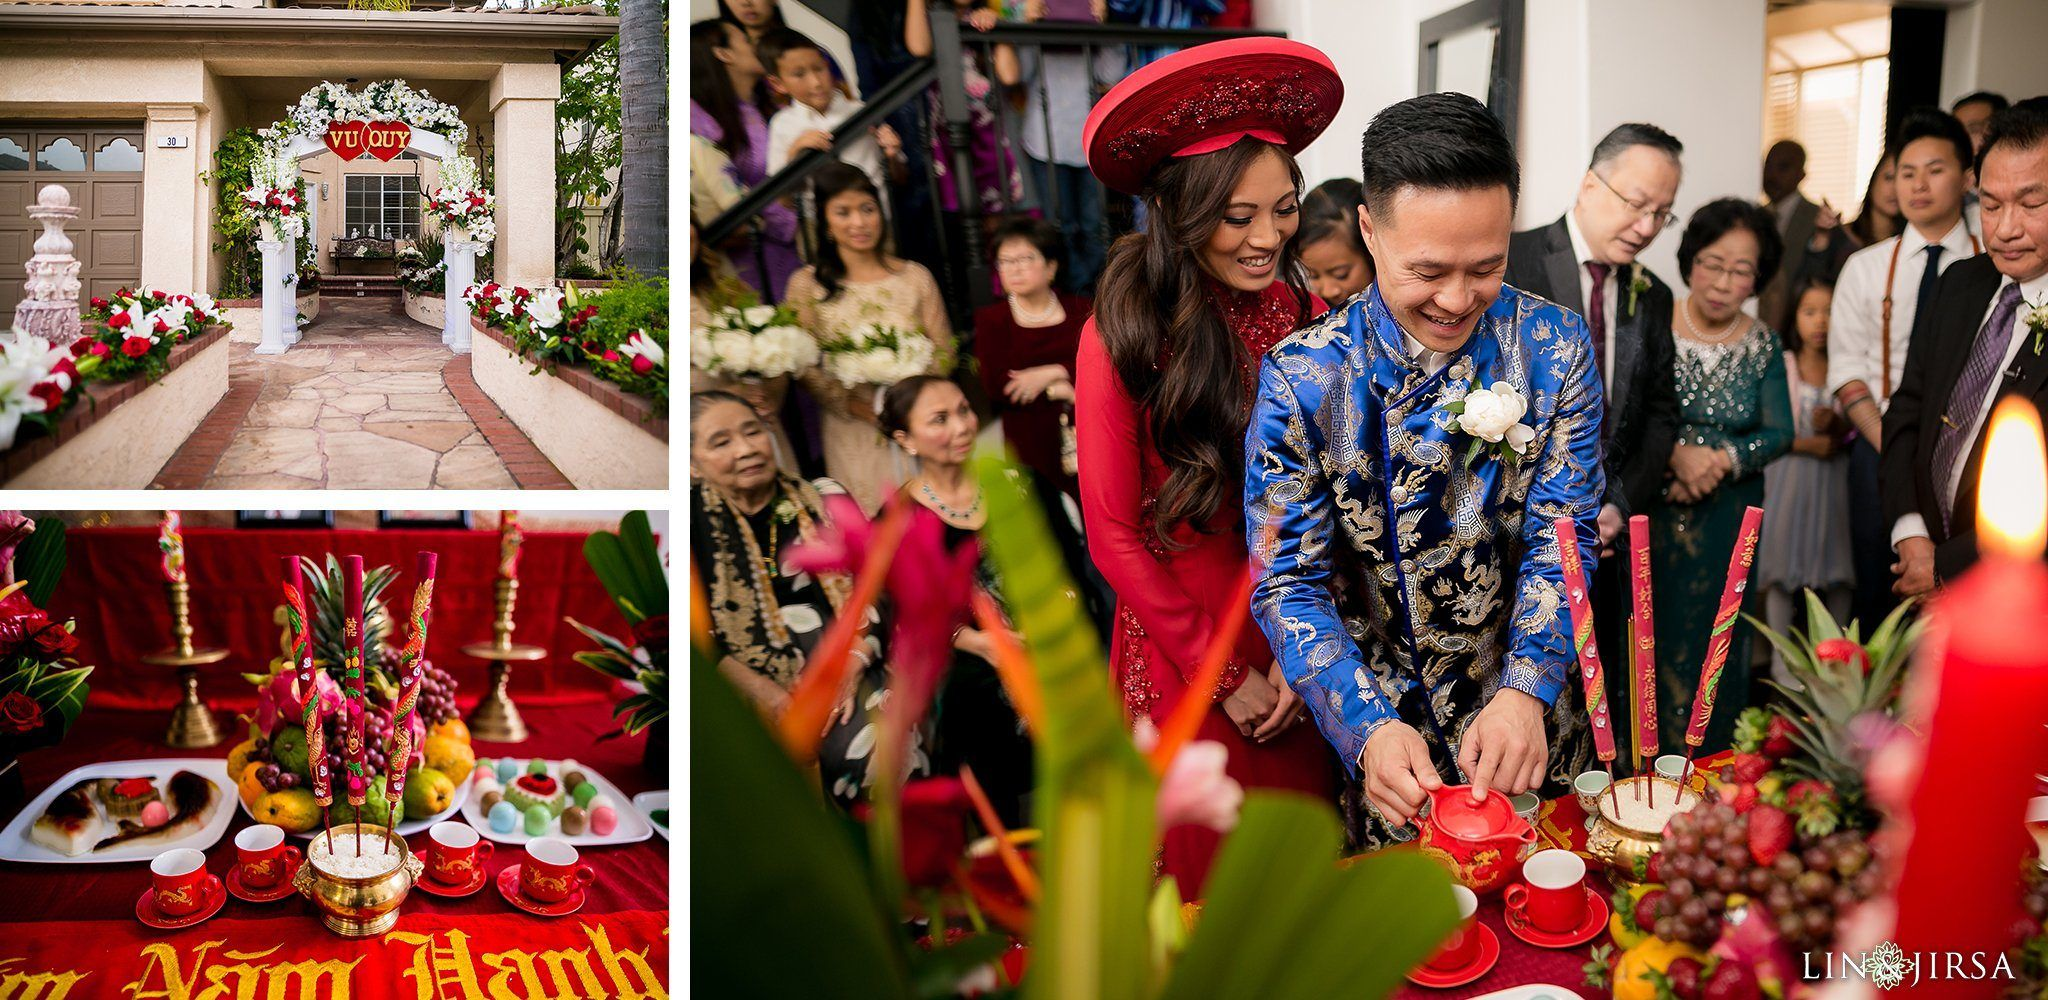 best of Marriage in culture traditions Asian